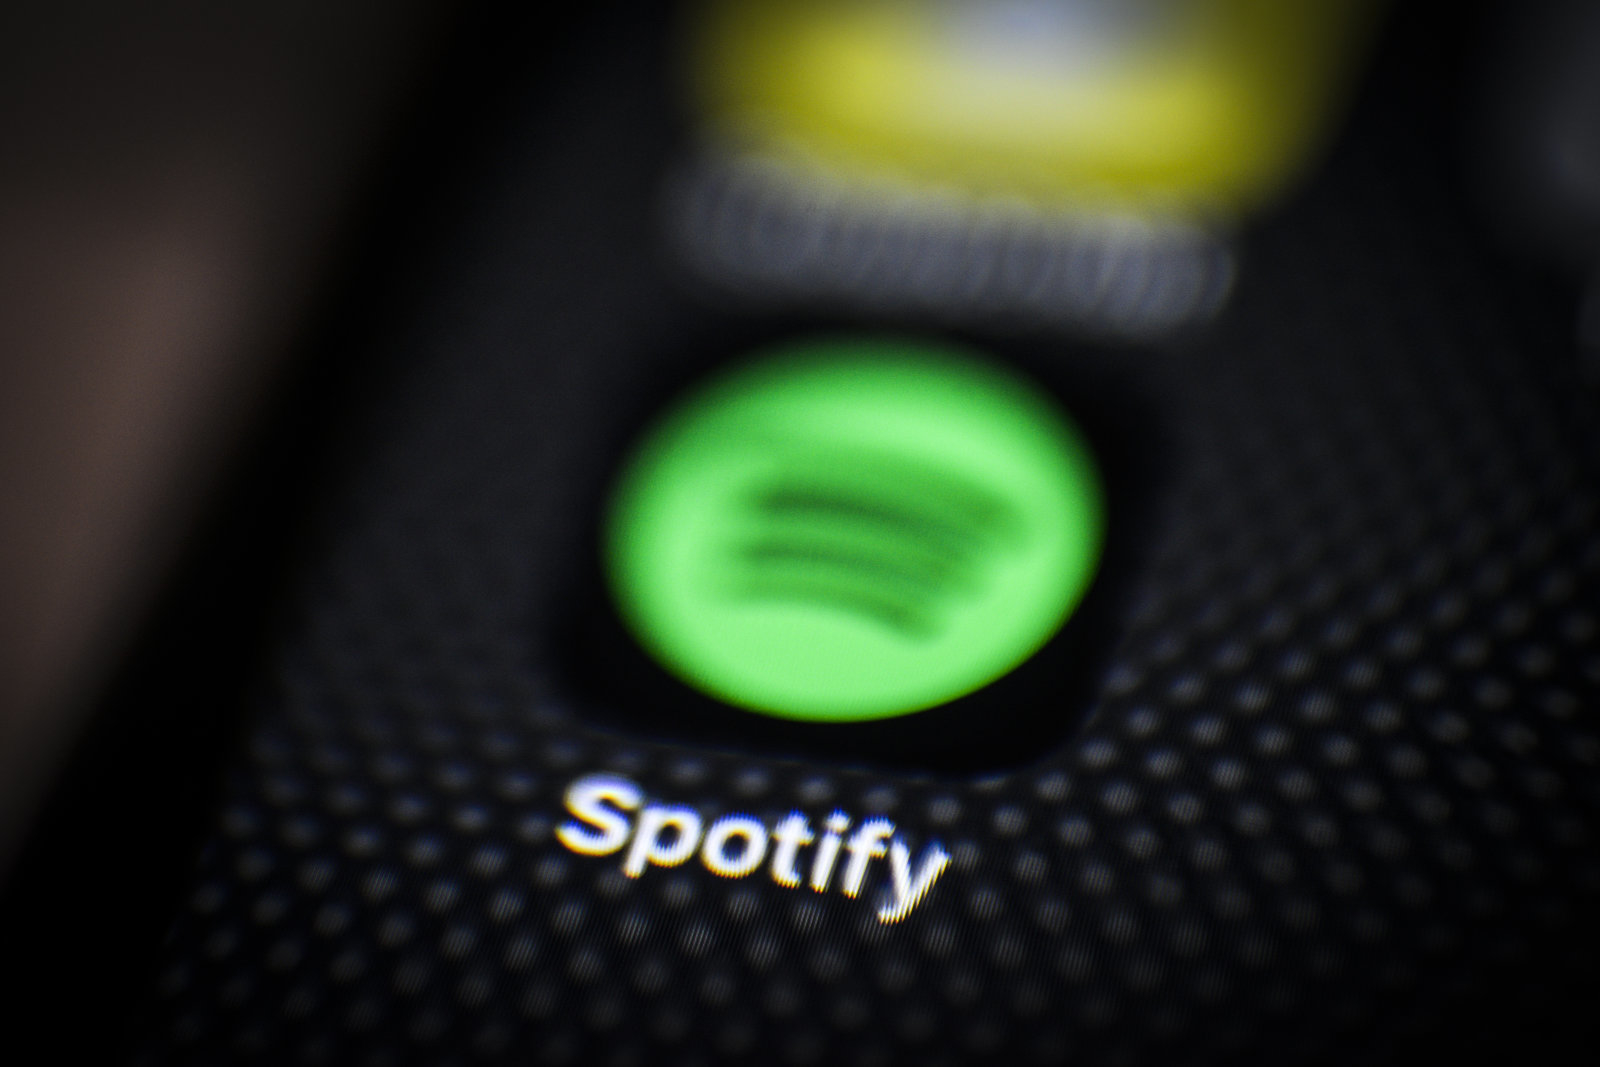 The Spotify applications is seen on an iPhone in this photo illustration on June 18, 2018. (Photo by Jaap Arriens/NurPhoto via Getty Images)